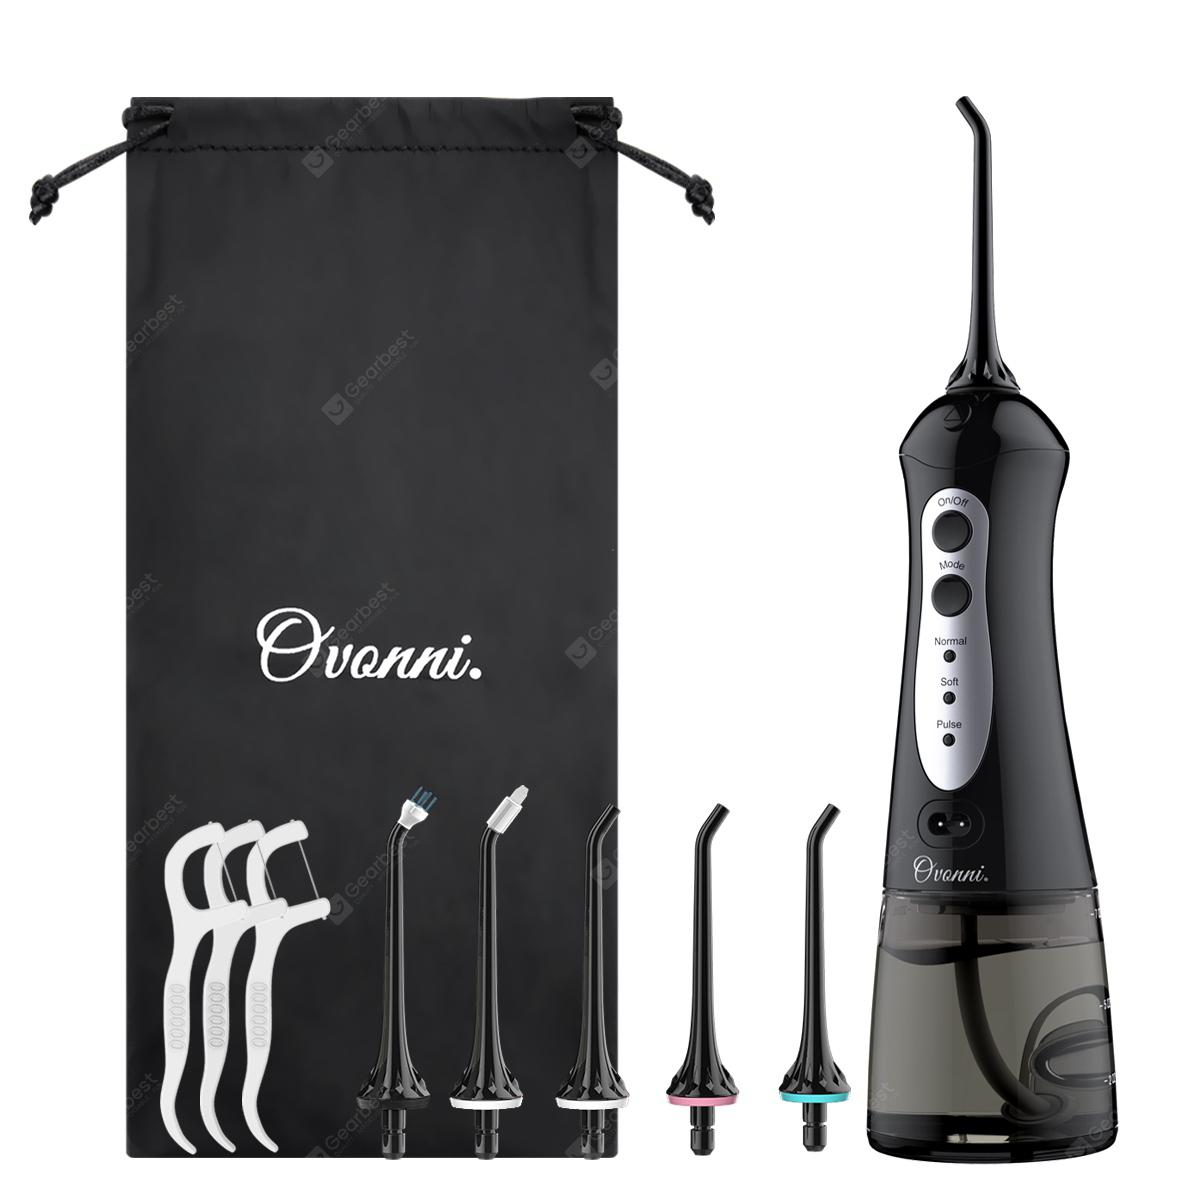 Ovonni Oral Irrigator Water Flosser Cordless USB Rechargeable Dental Care with 3 Modes and 200ML Water Tank IPX7 Waterproof Teeth Cleaner with 6 Jet Tips Replacement and Storage Bag